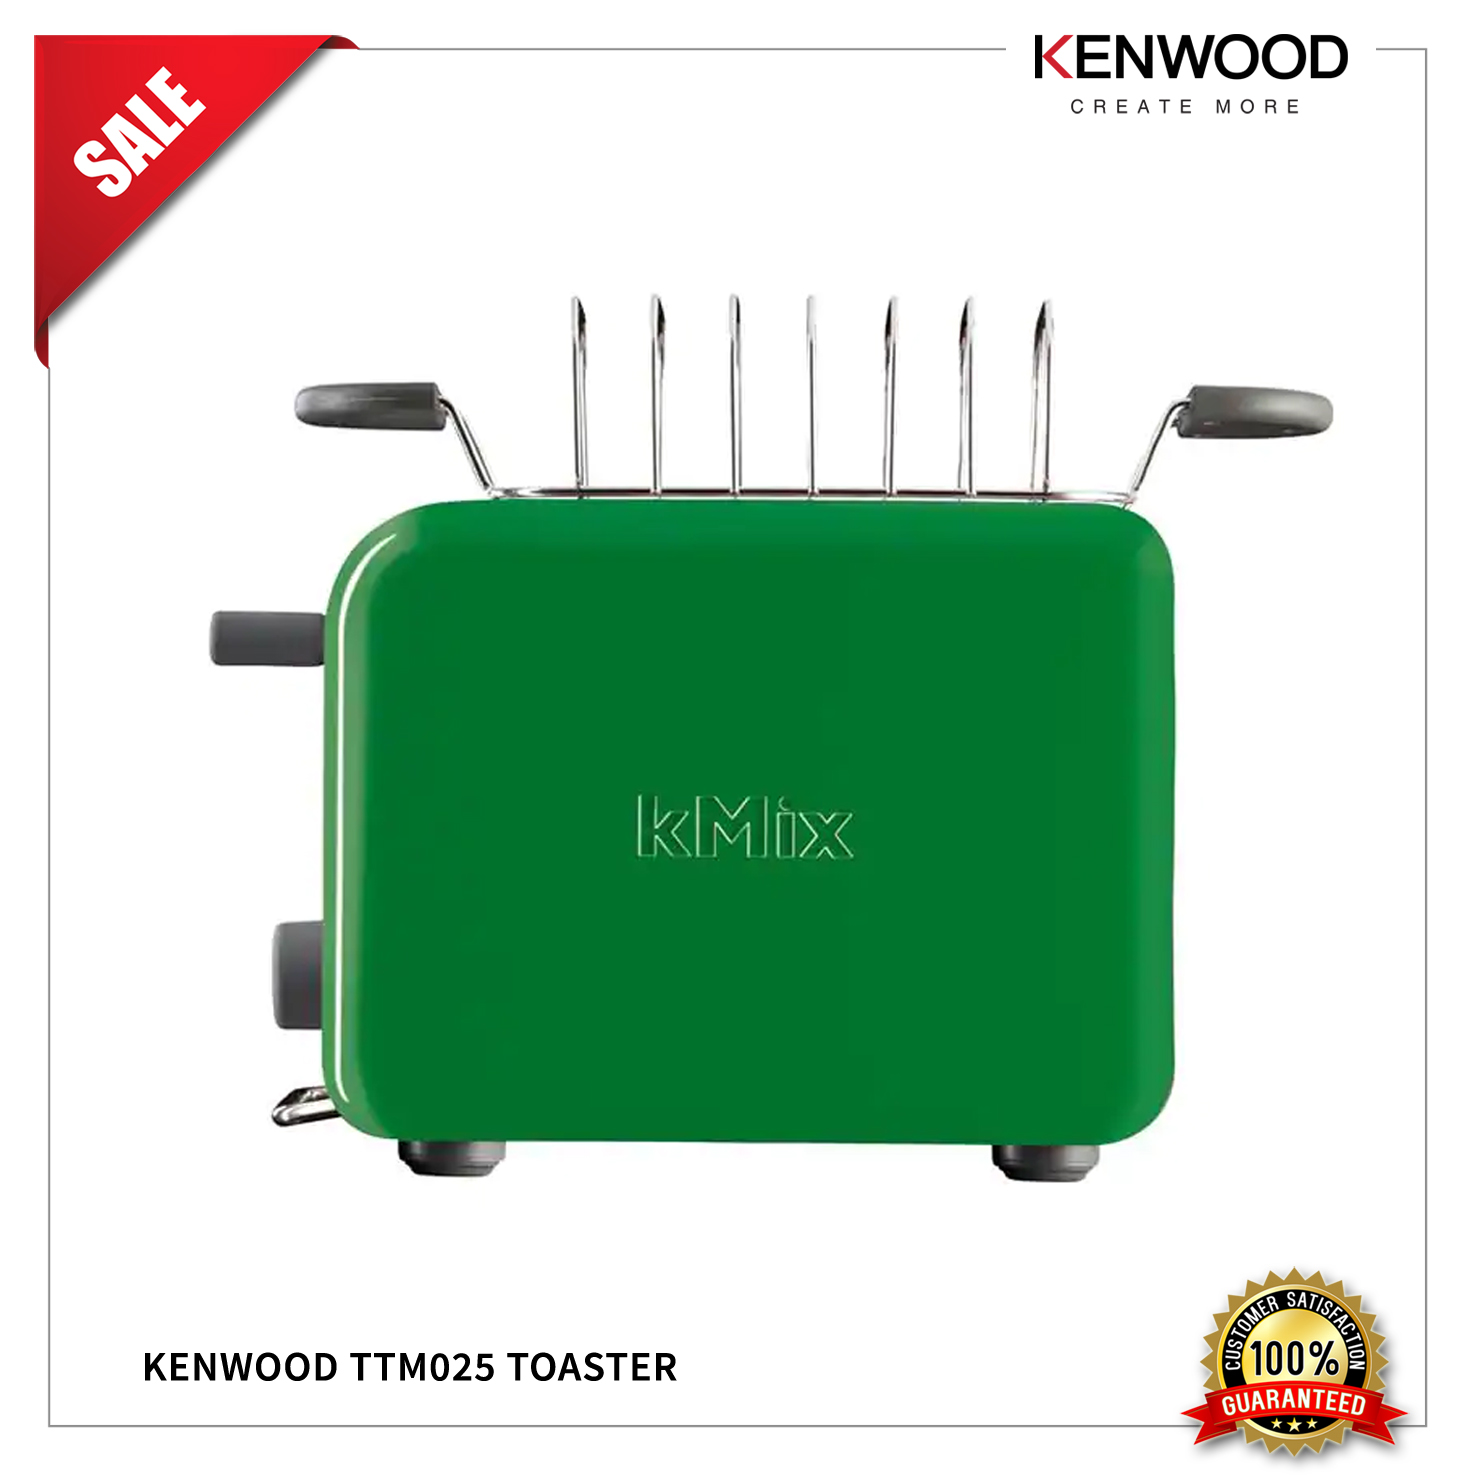 KENWOOD_TTM025_TOASTER_GREEN – REVISI 1